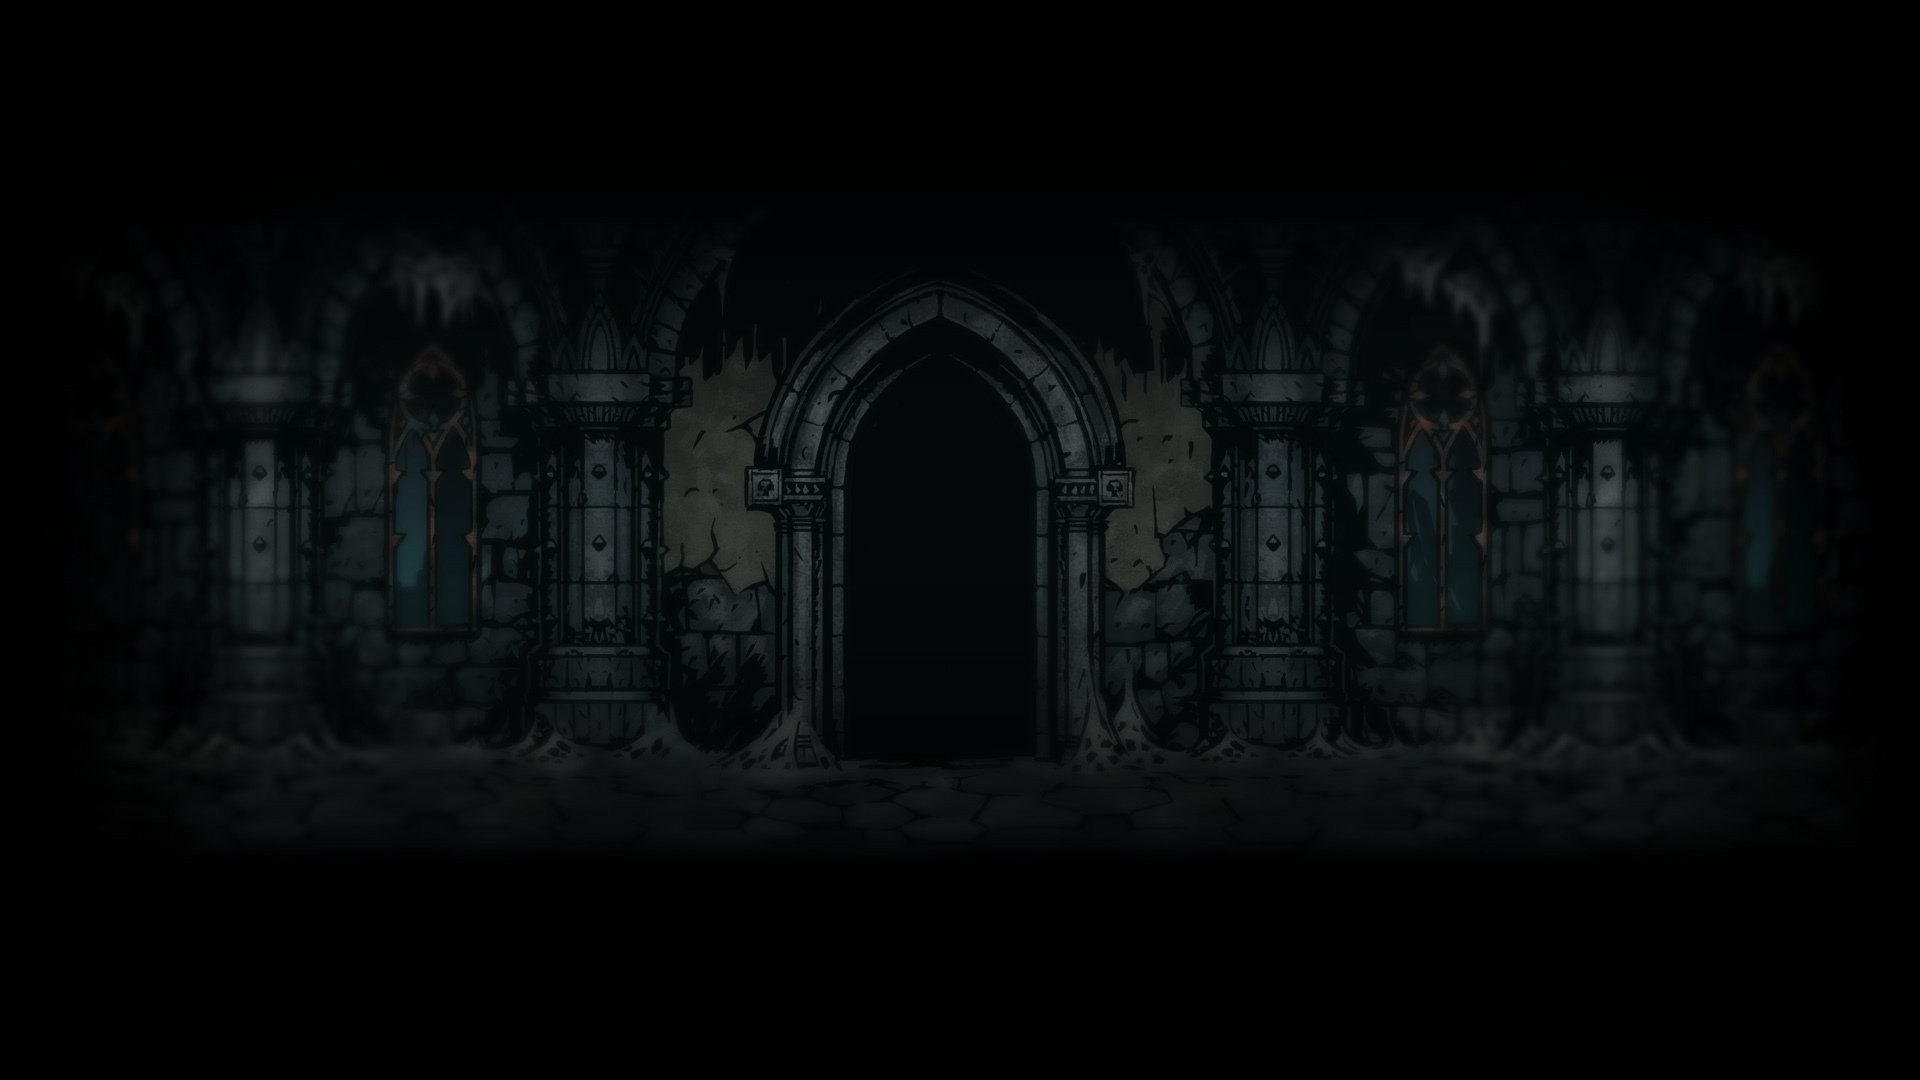 Dungeon background ·① Download free amazing backgrounds ...